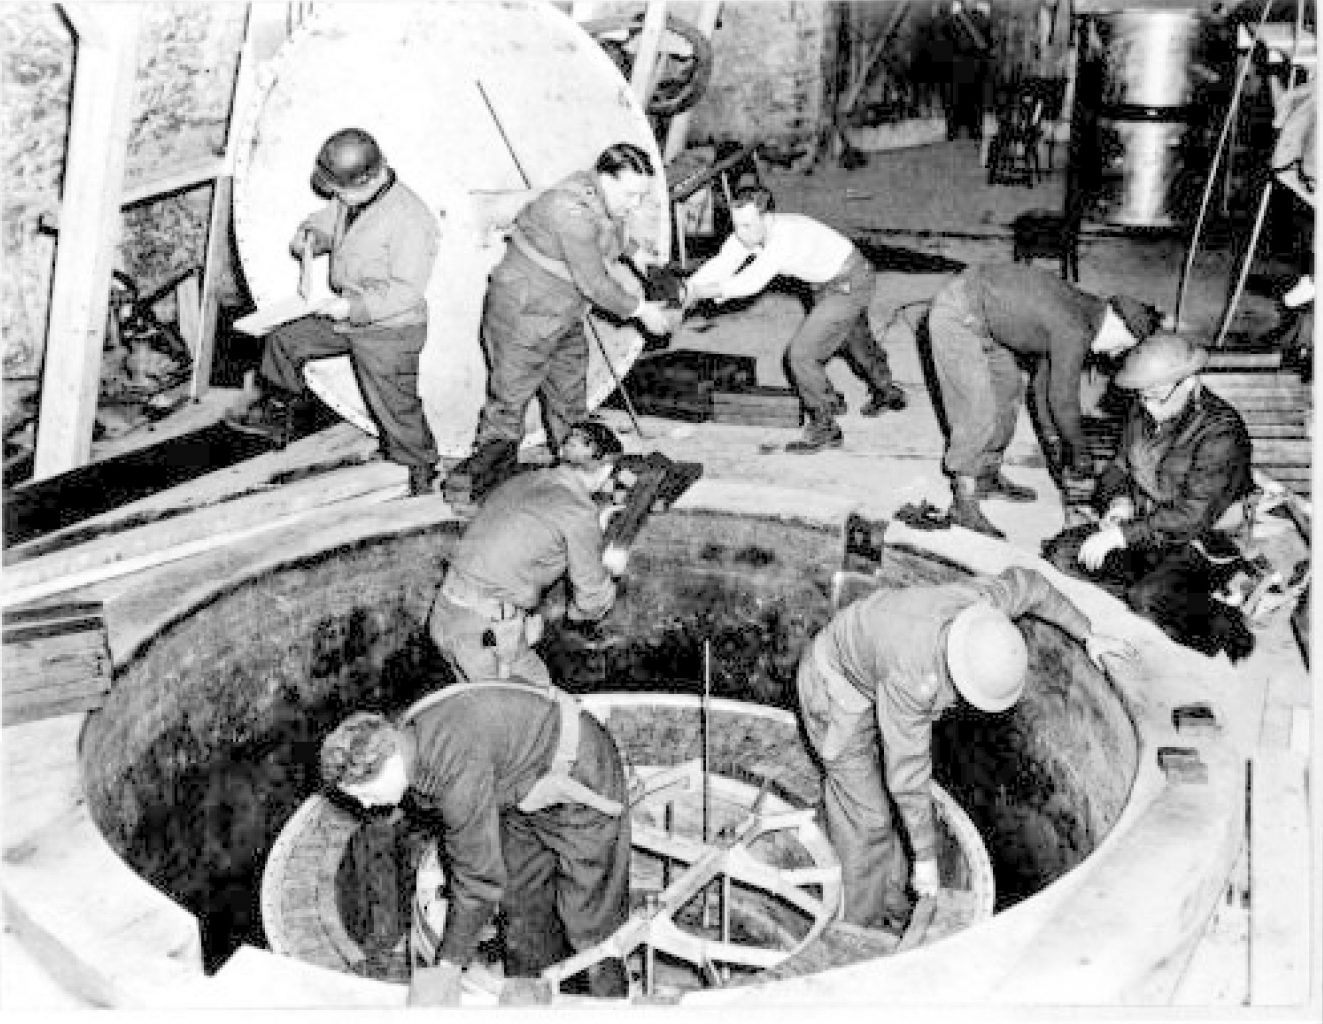 Allied troops dismantling the Heisenberg nuclear reactor in 1945. Credit: Wikimedia Commons